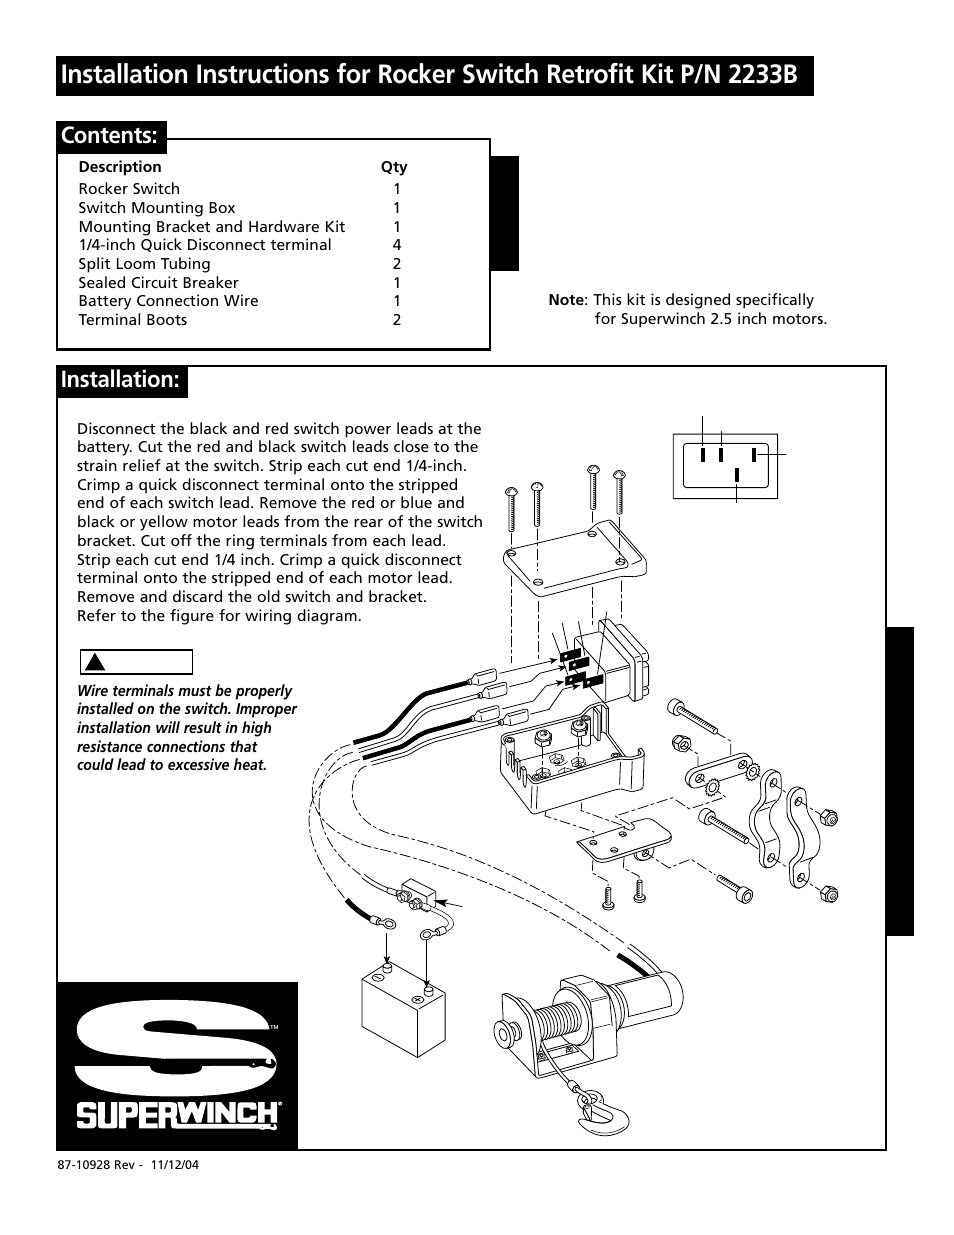 superwinch rocker switch 2233b page1 superwinch rocker switch (2233b) user manual 6 pages superwinch wiring diagram at aneh.co